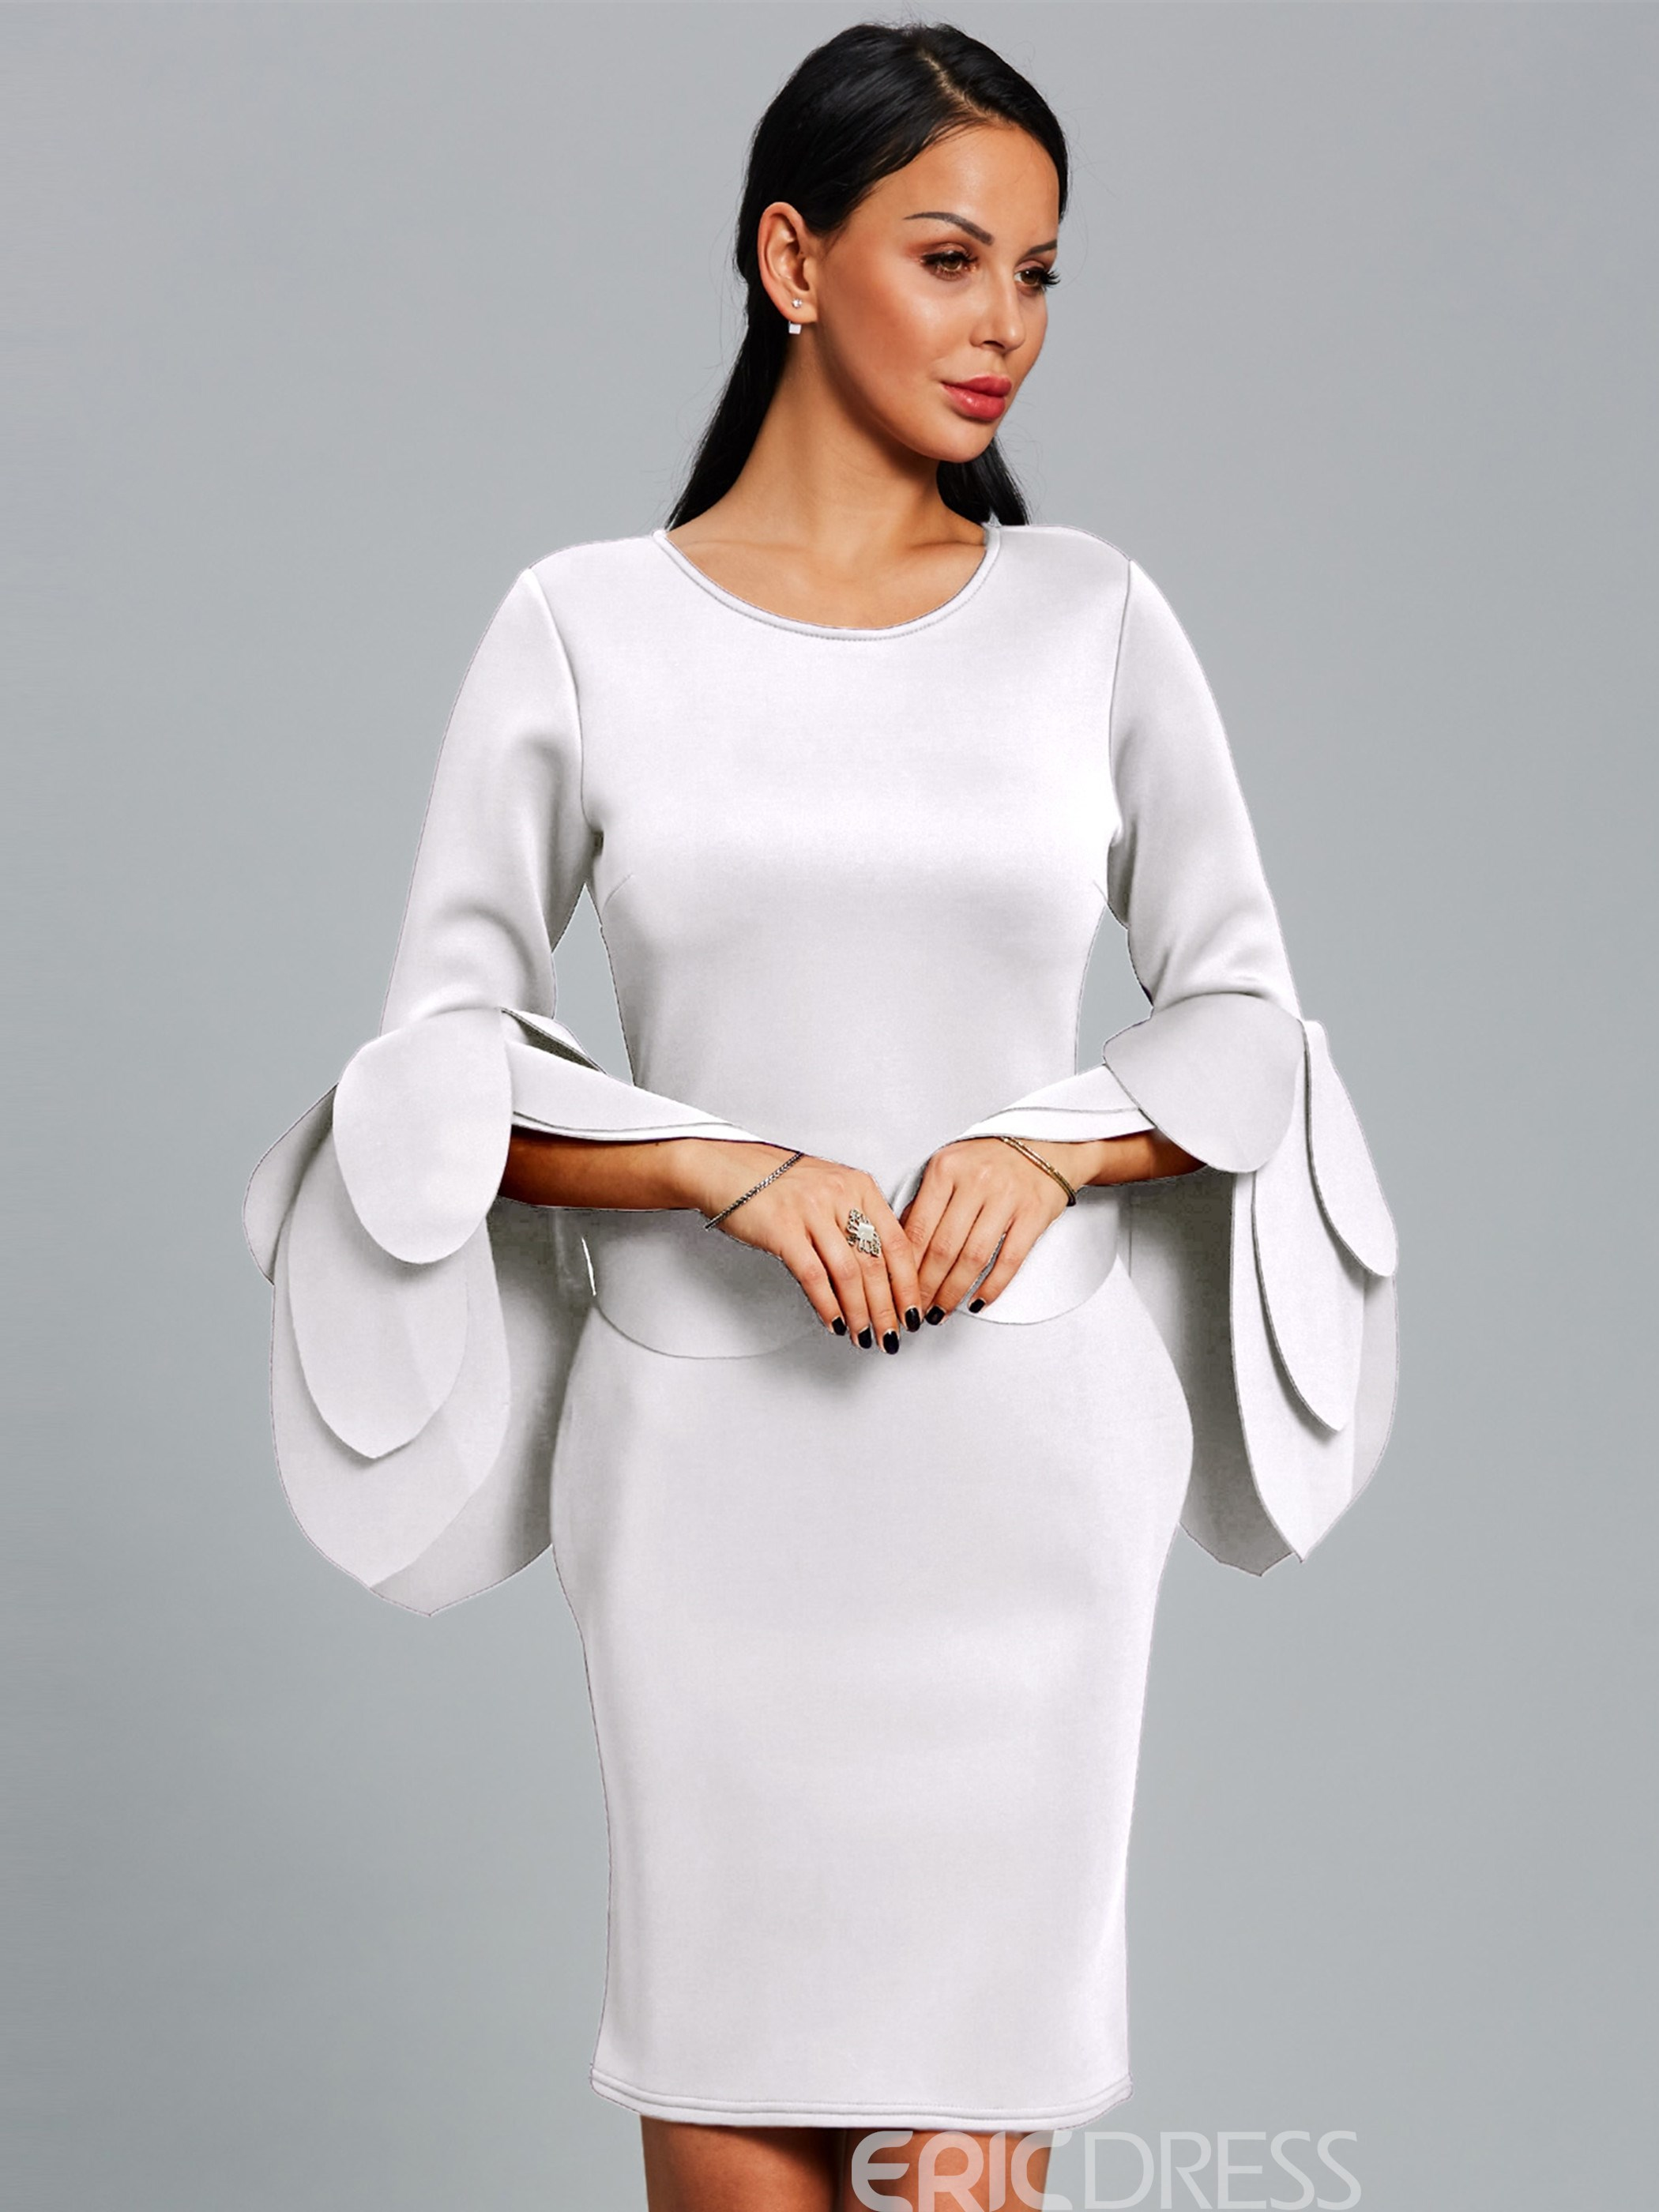 Ericdress Long Petal Sleeve Plain Bodycon Dress ...